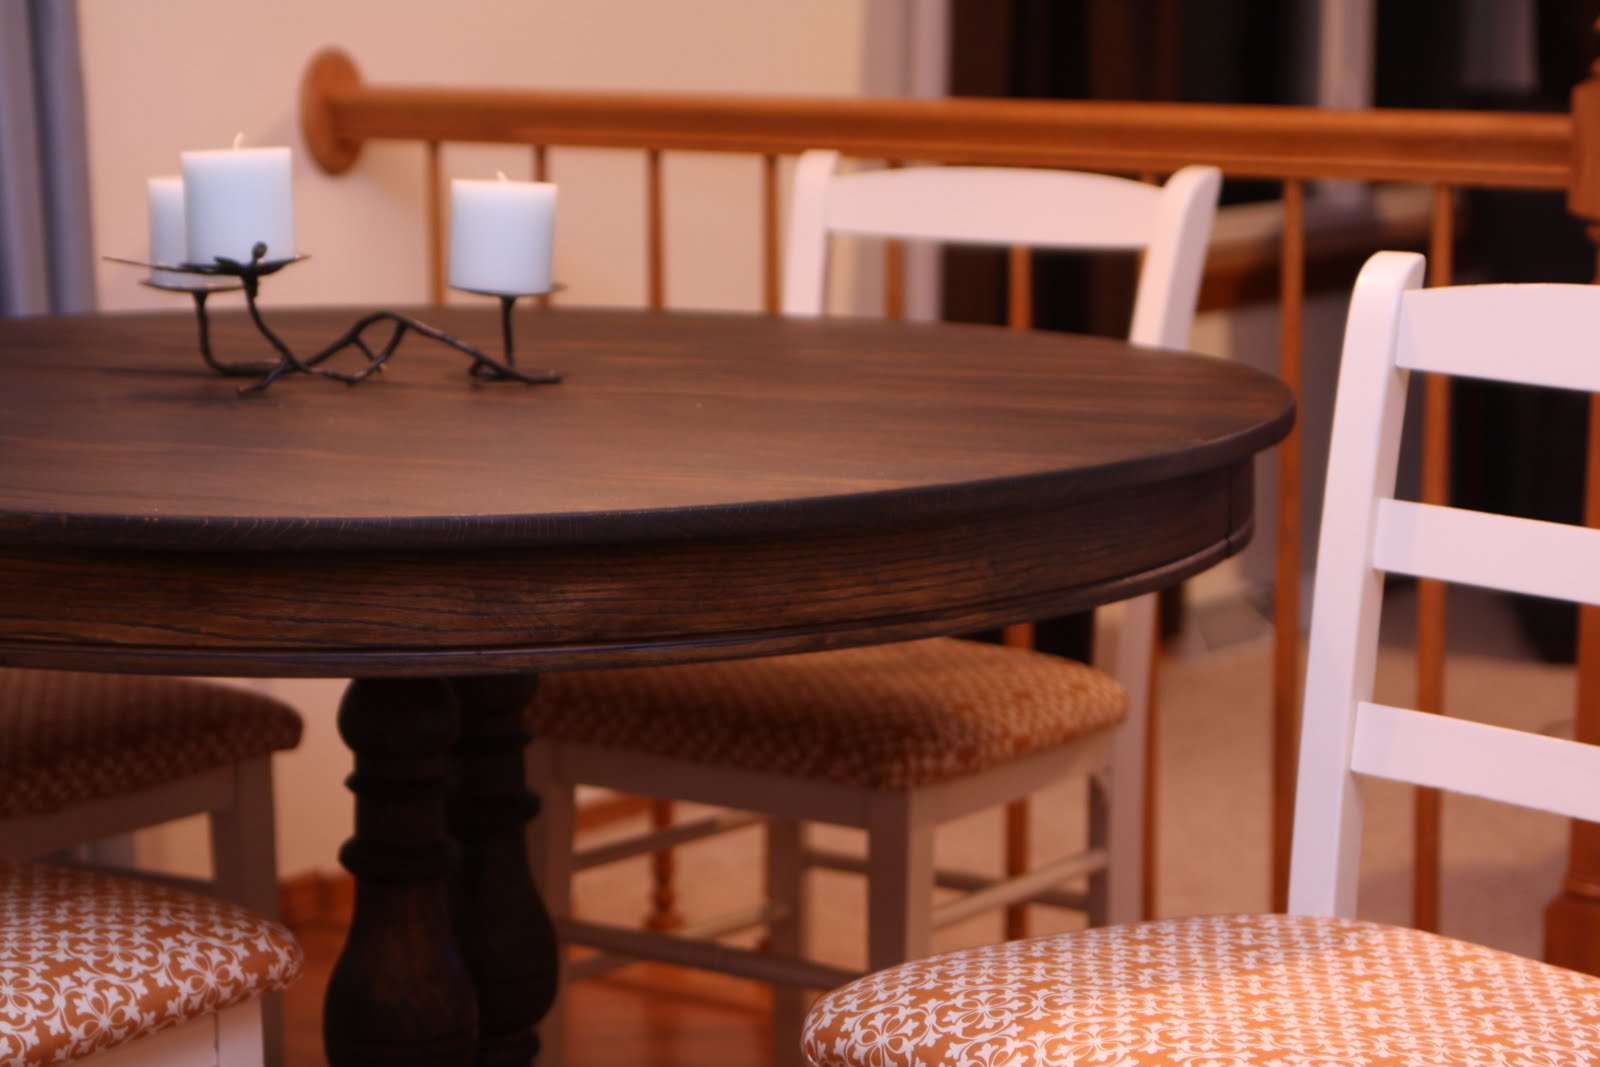 Decorating the dorchester way refinished dining room table and chairs - Refinish contemporary dining room tables ...